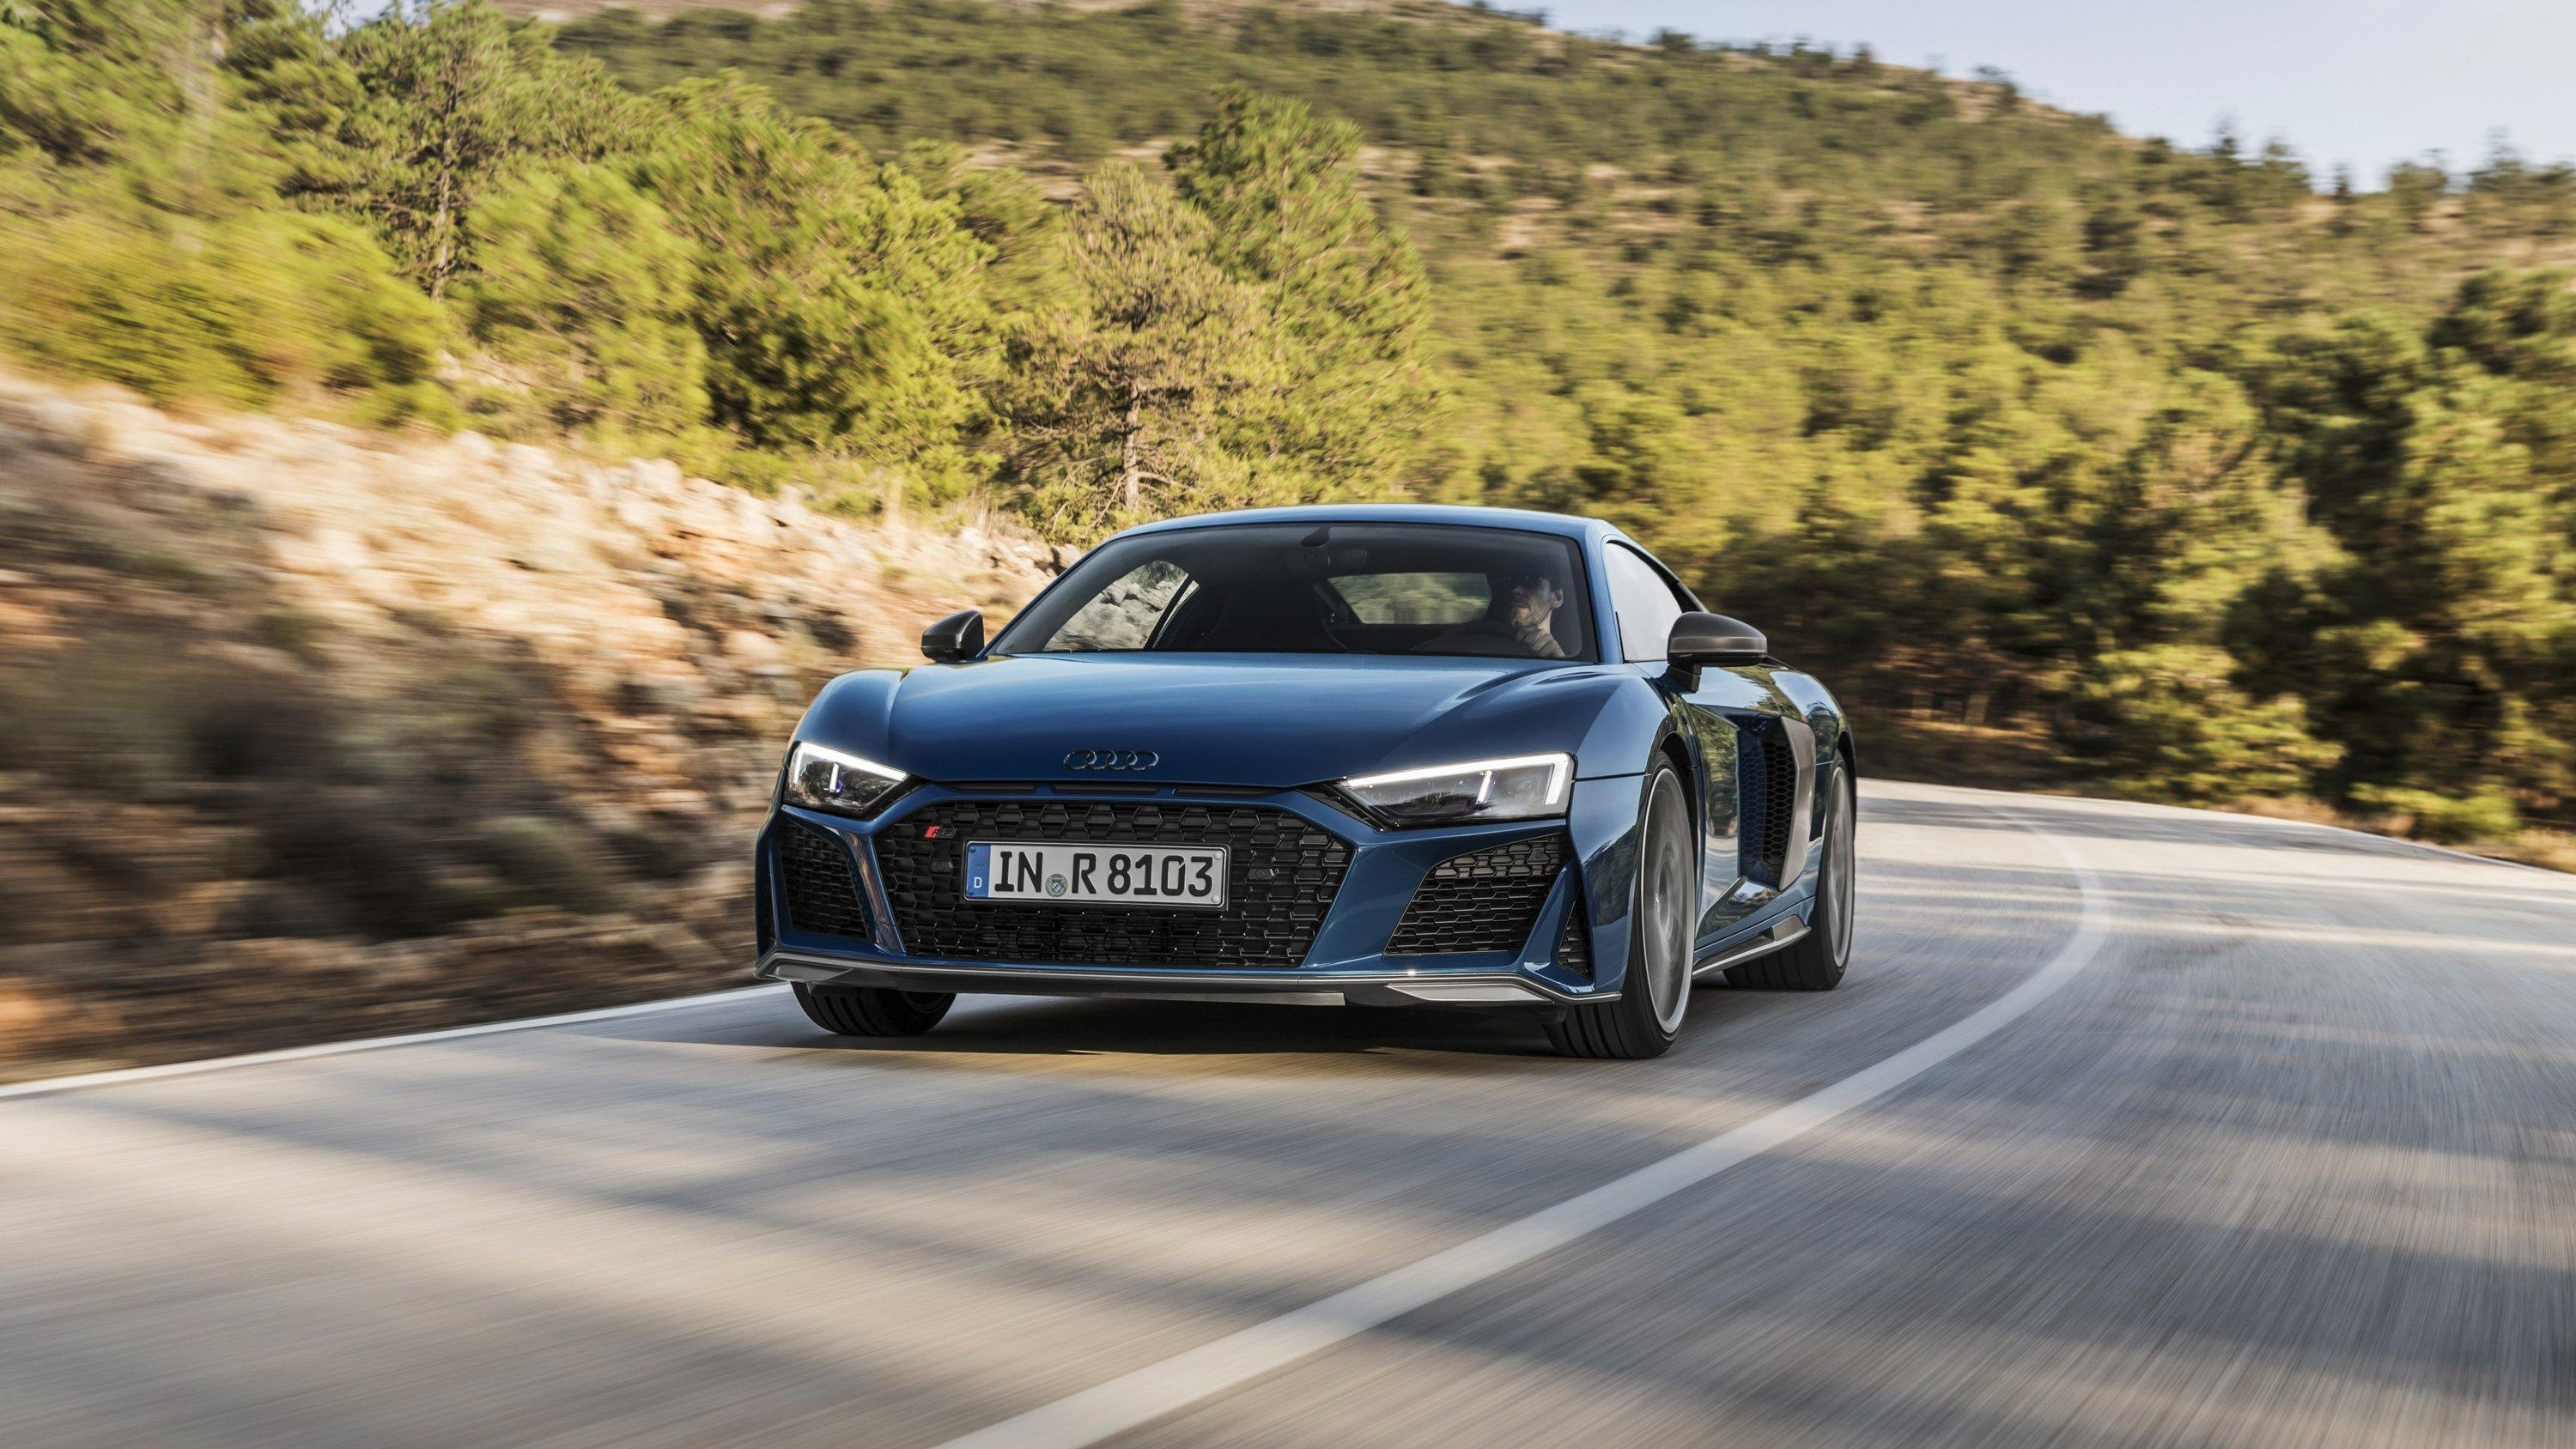 Wallpapers Of The Day: 2019 Audi R8